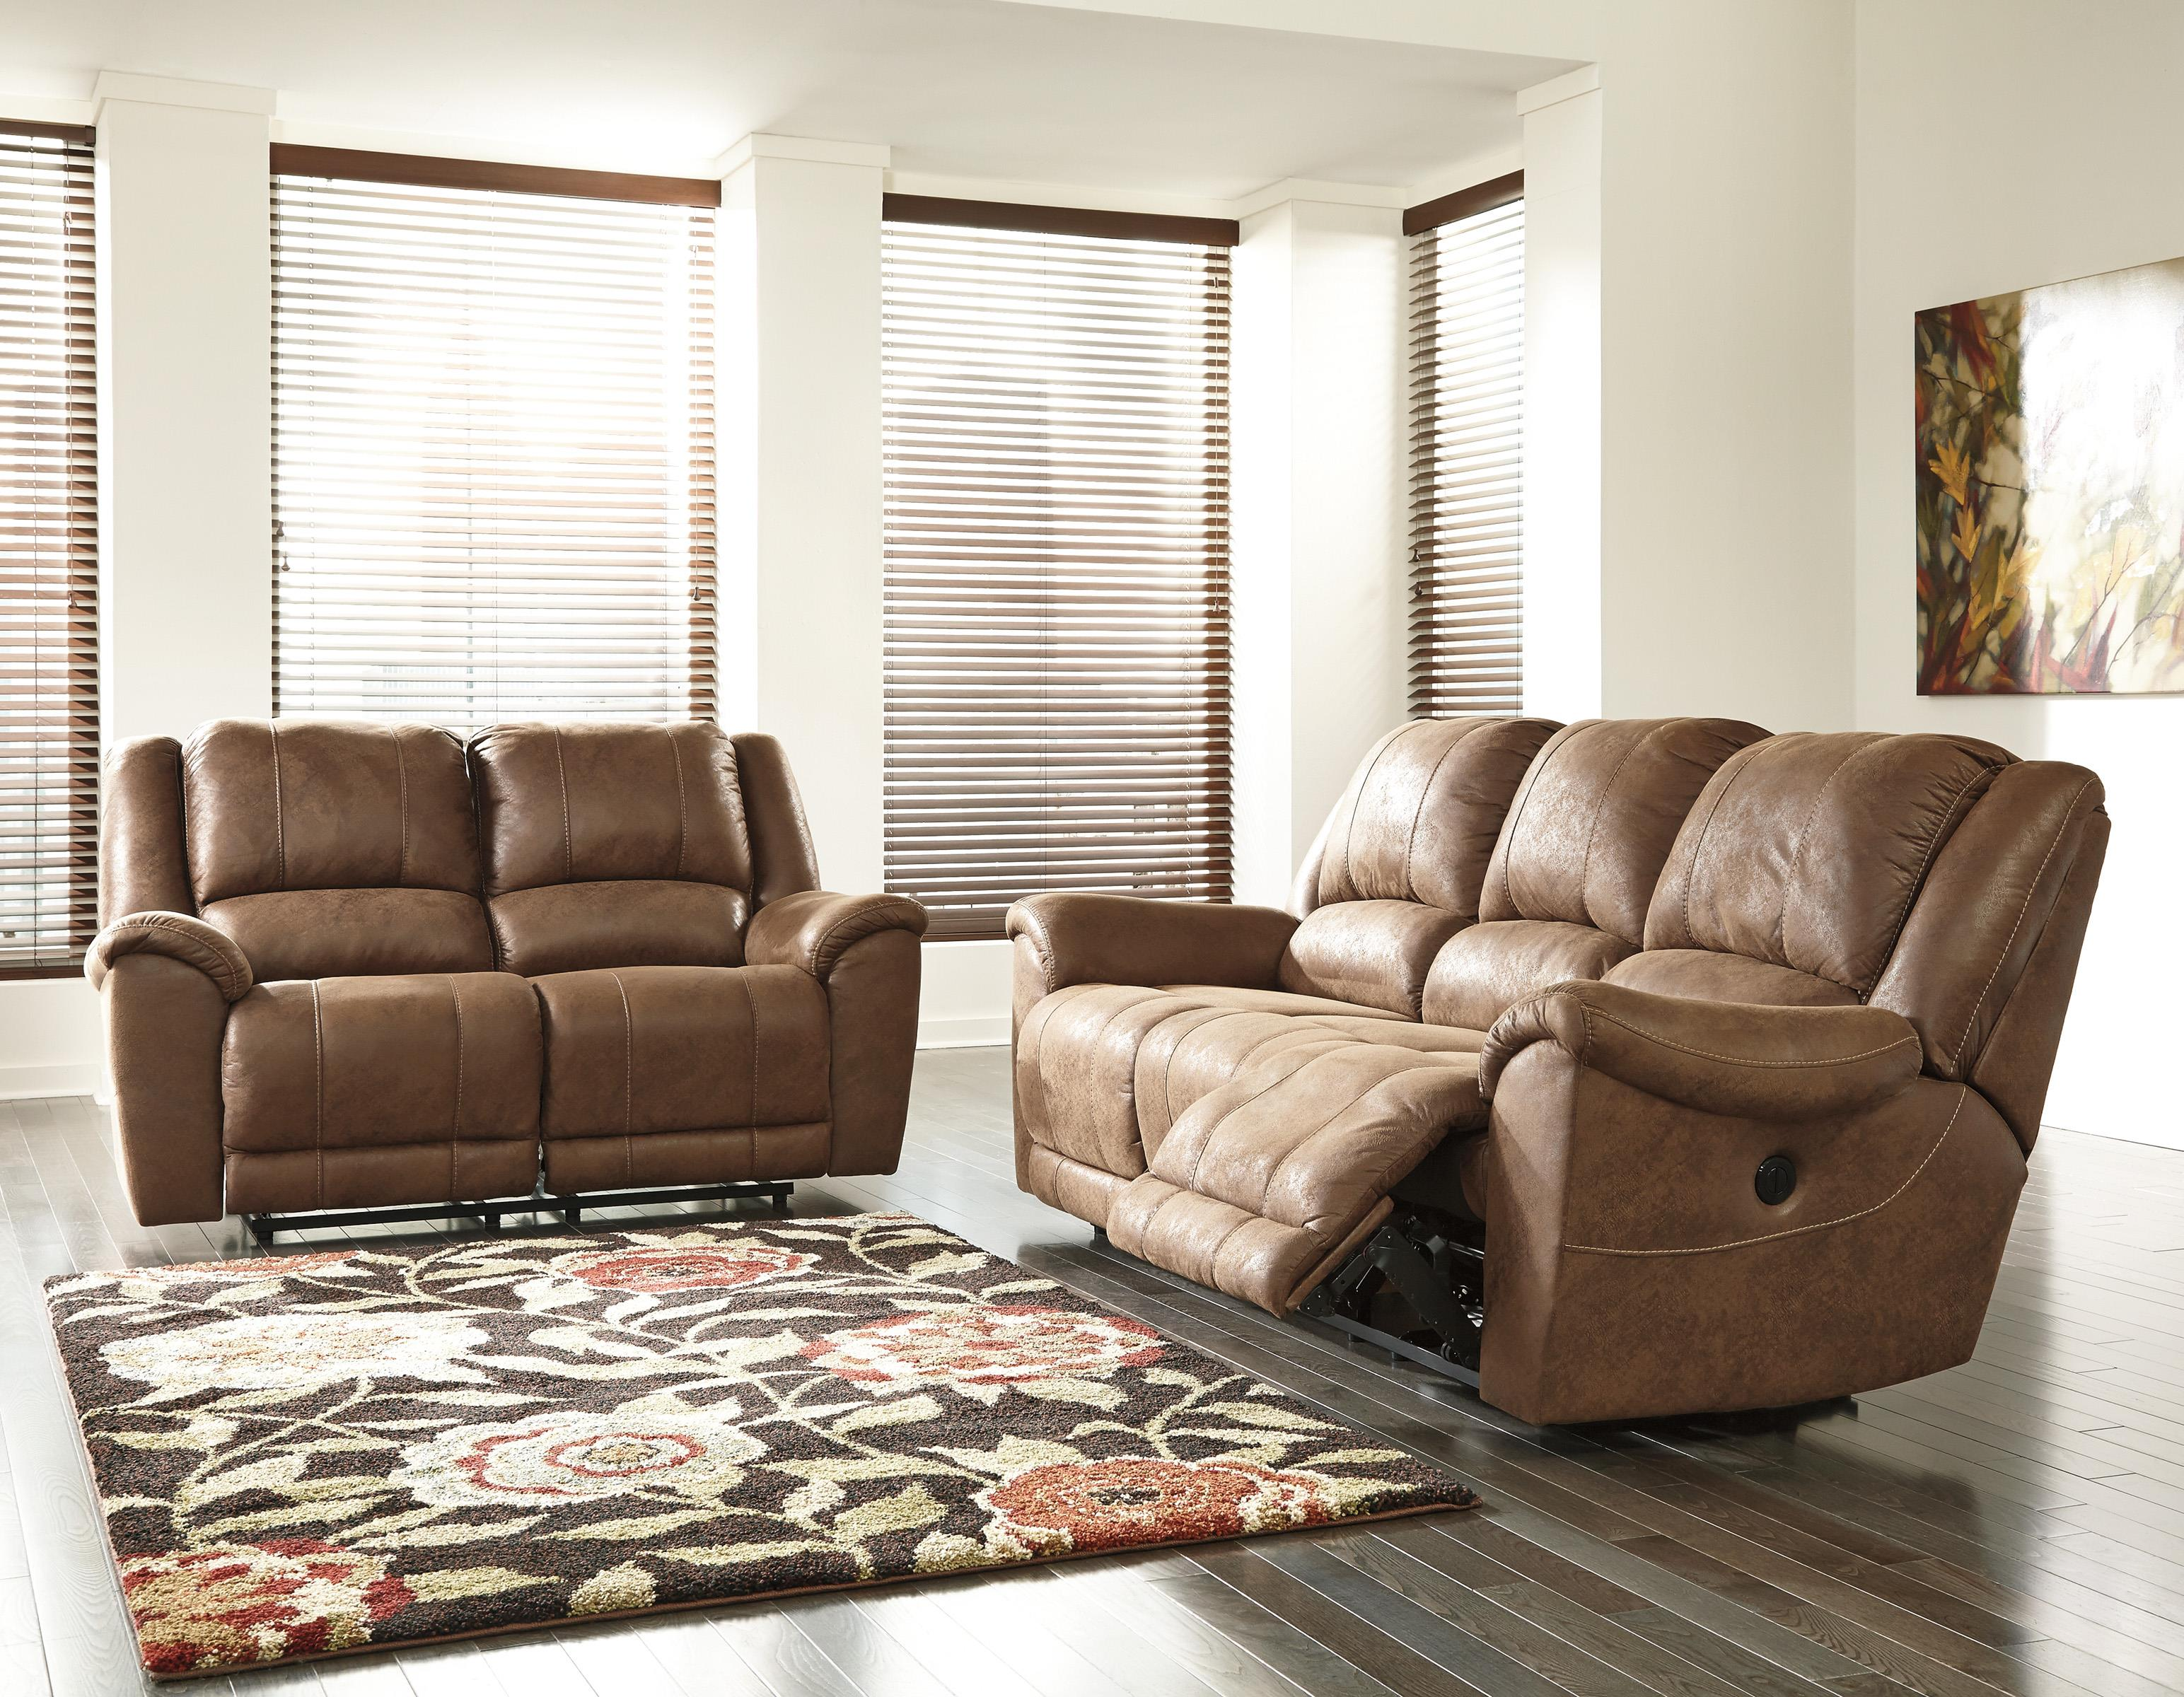 Benchcraft Niarobi Reclining Living Room Group - Item Number: 40601 Living Room Group 1